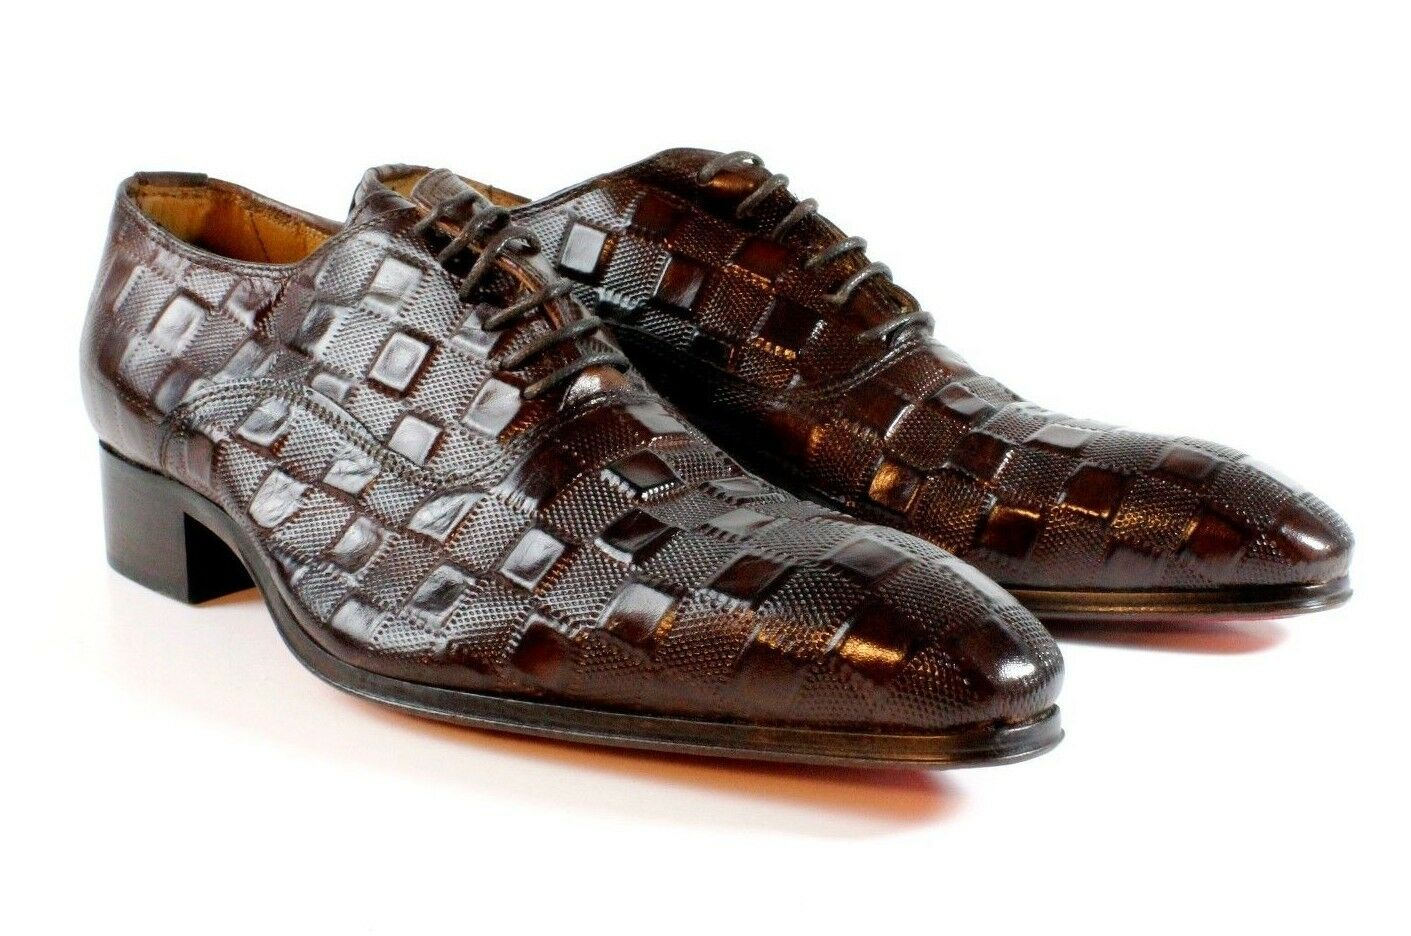 Ivan Troy Brown Cube Handmade Men Italian Leather Dress shoes Oxford shoes